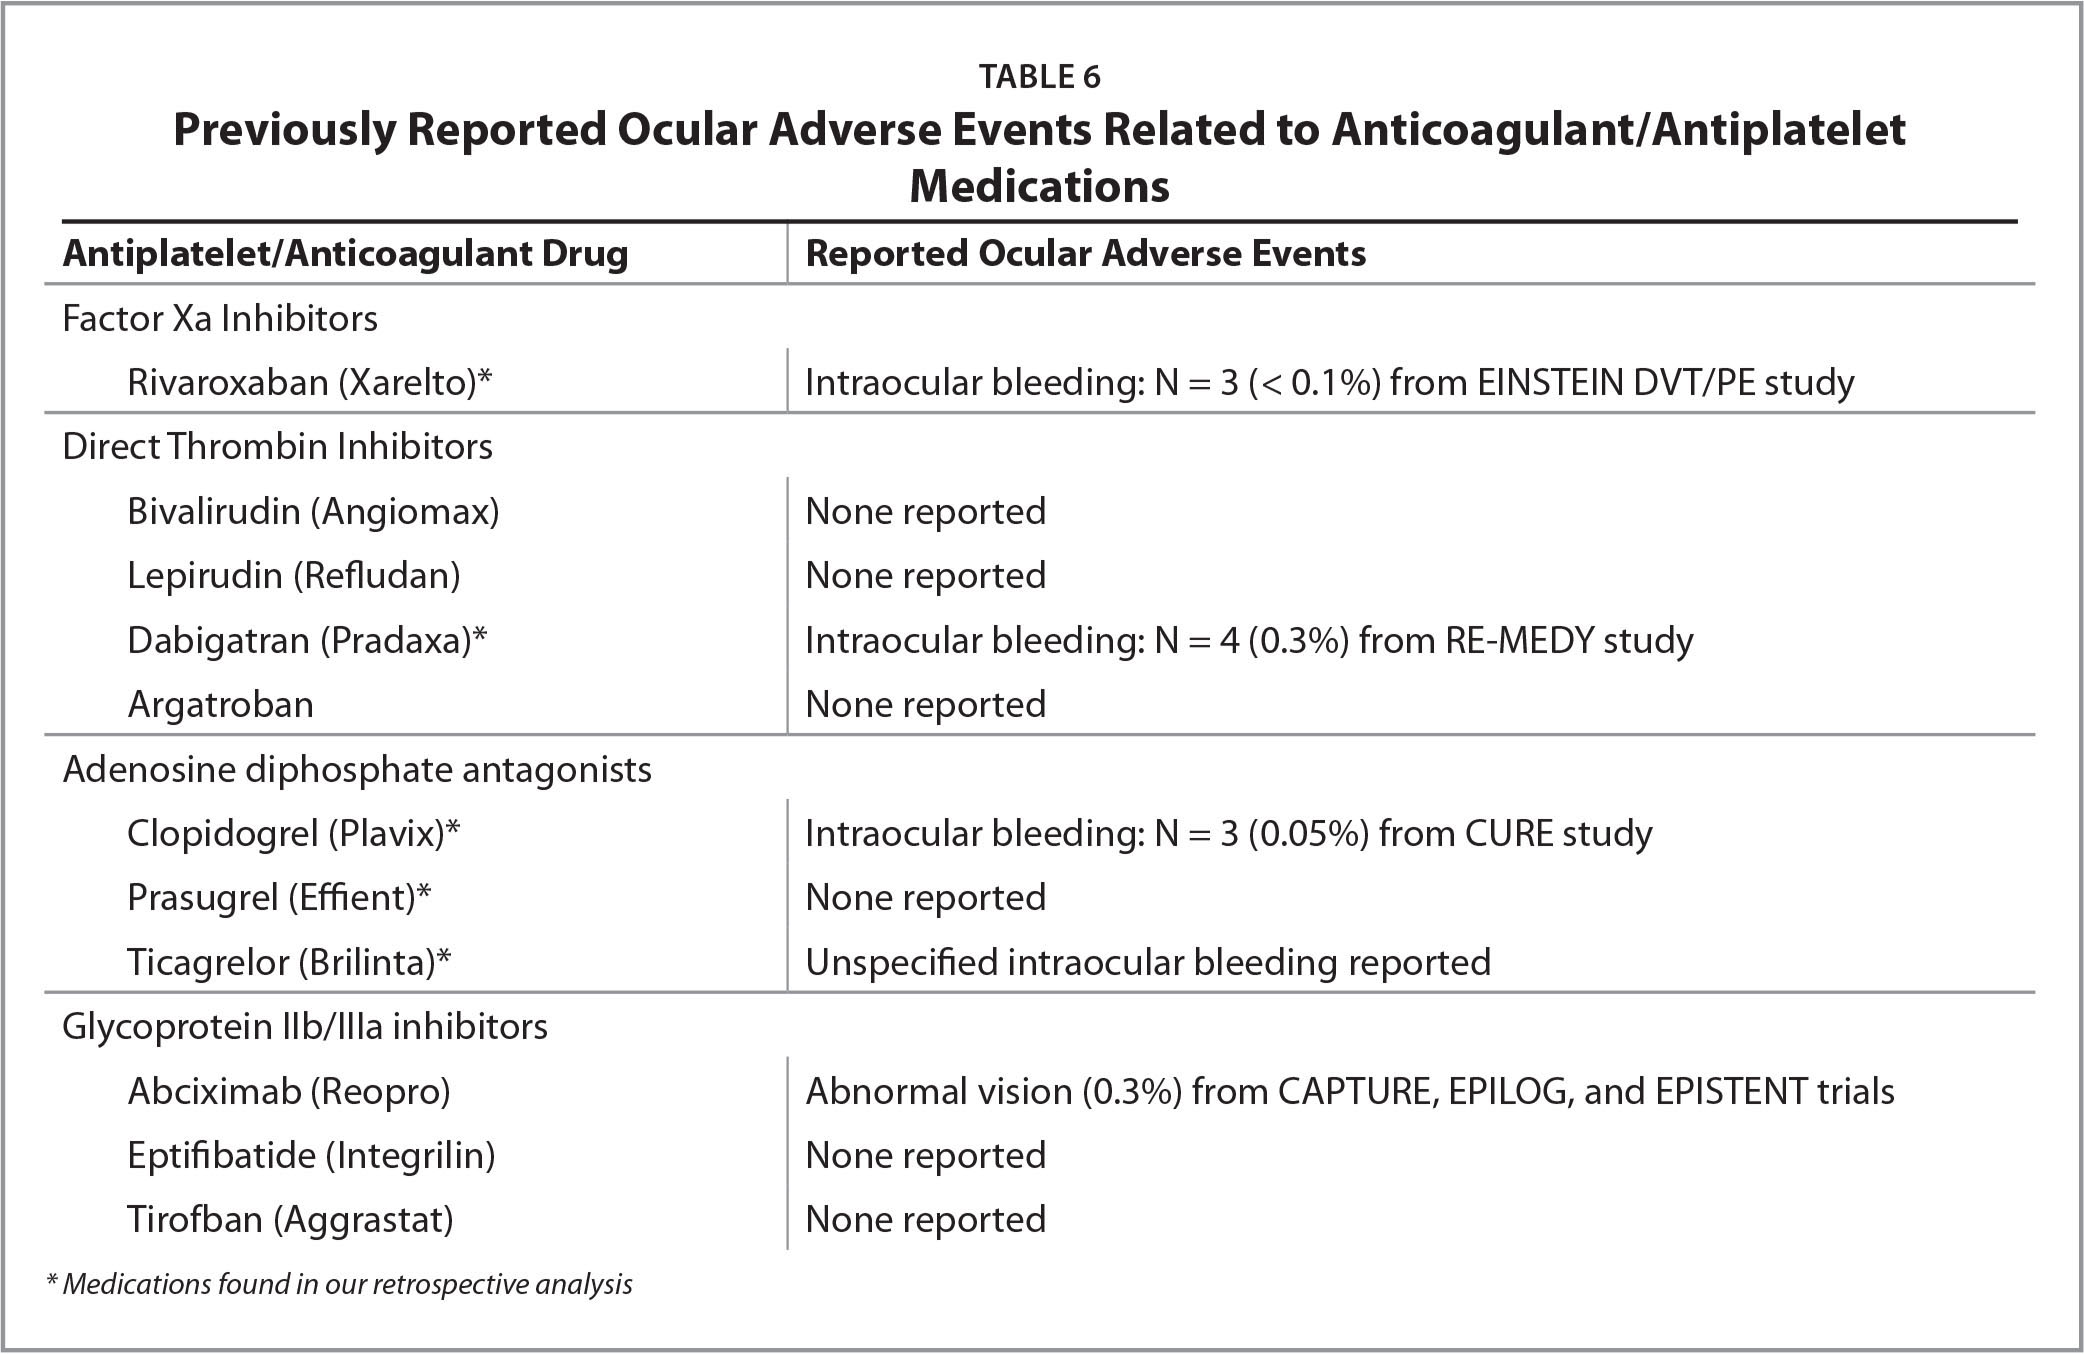 Previously Reported Ocular Adverse Events Related to Anticoagulant/Antiplatelet Medications